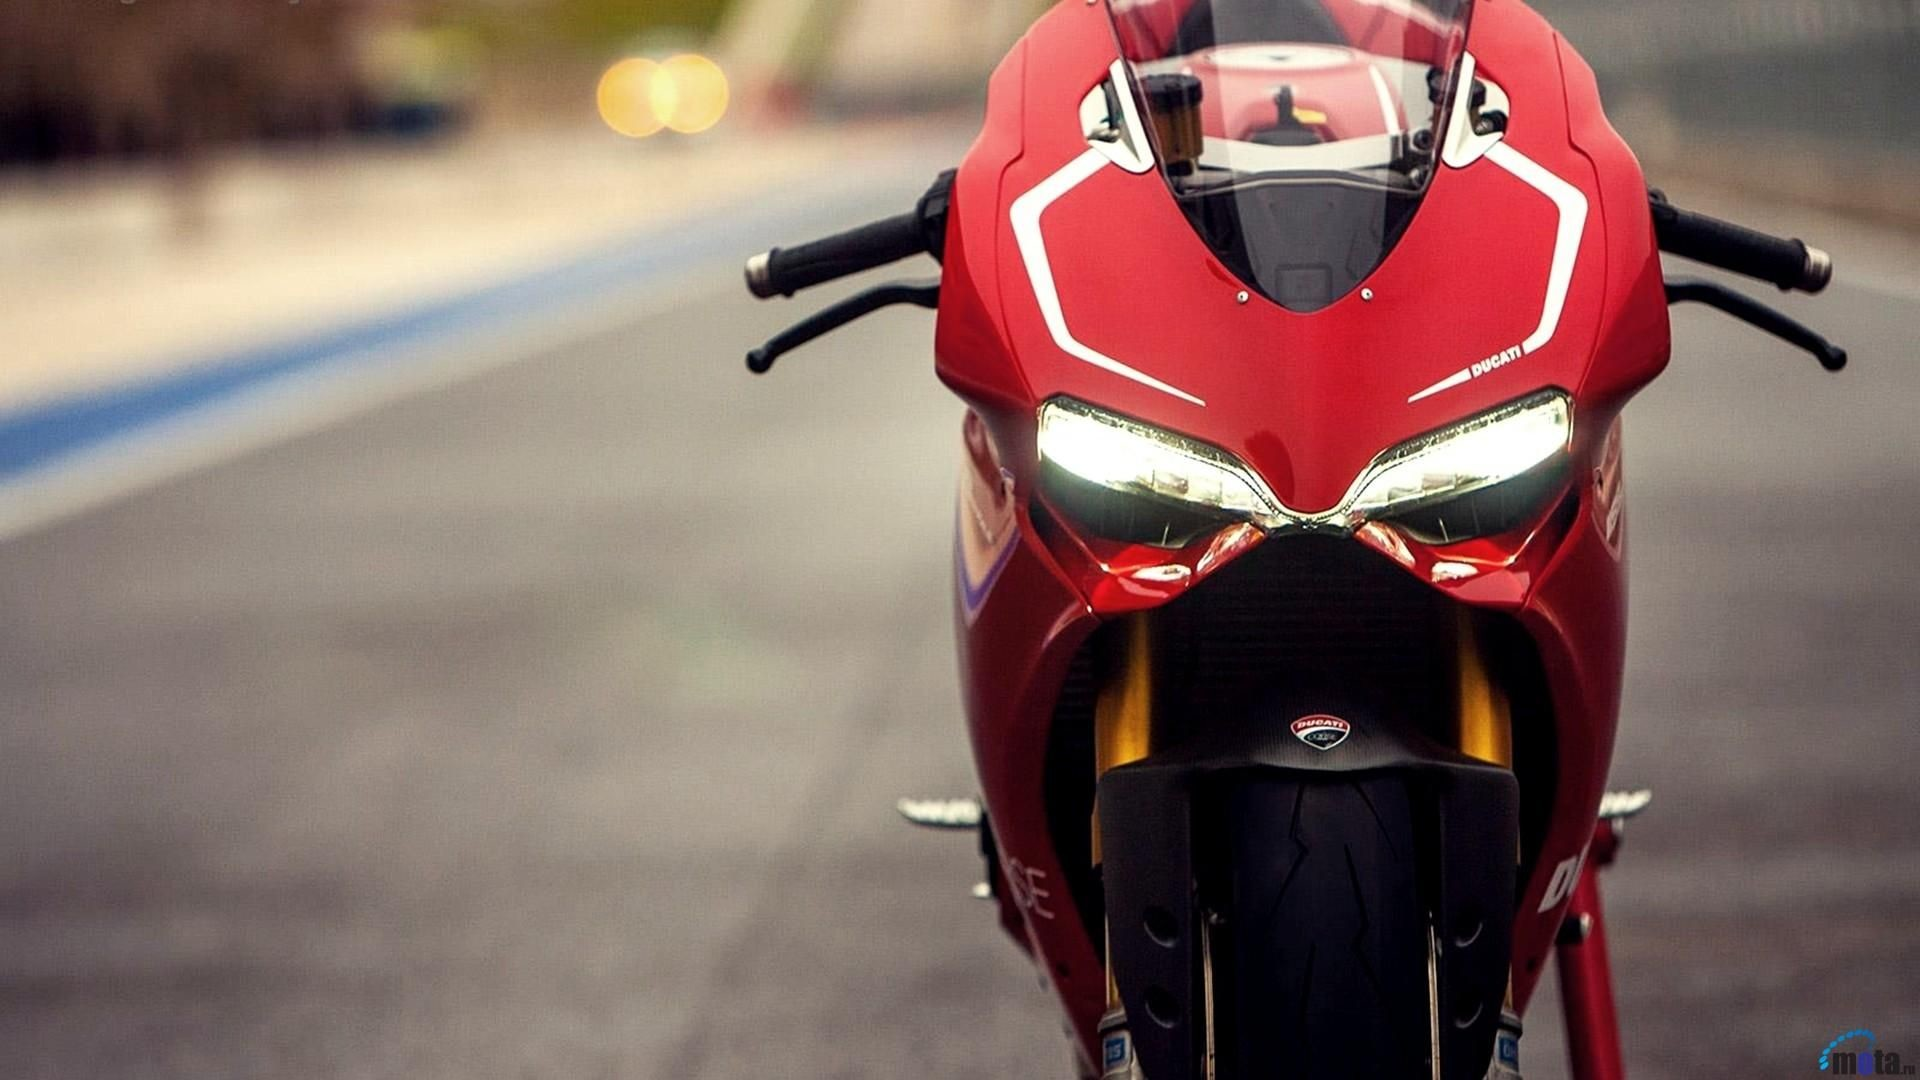 1920x1080 Download Wallpaper Red Ducati 1199 Panigale R (1920 x 1080 HDTV .